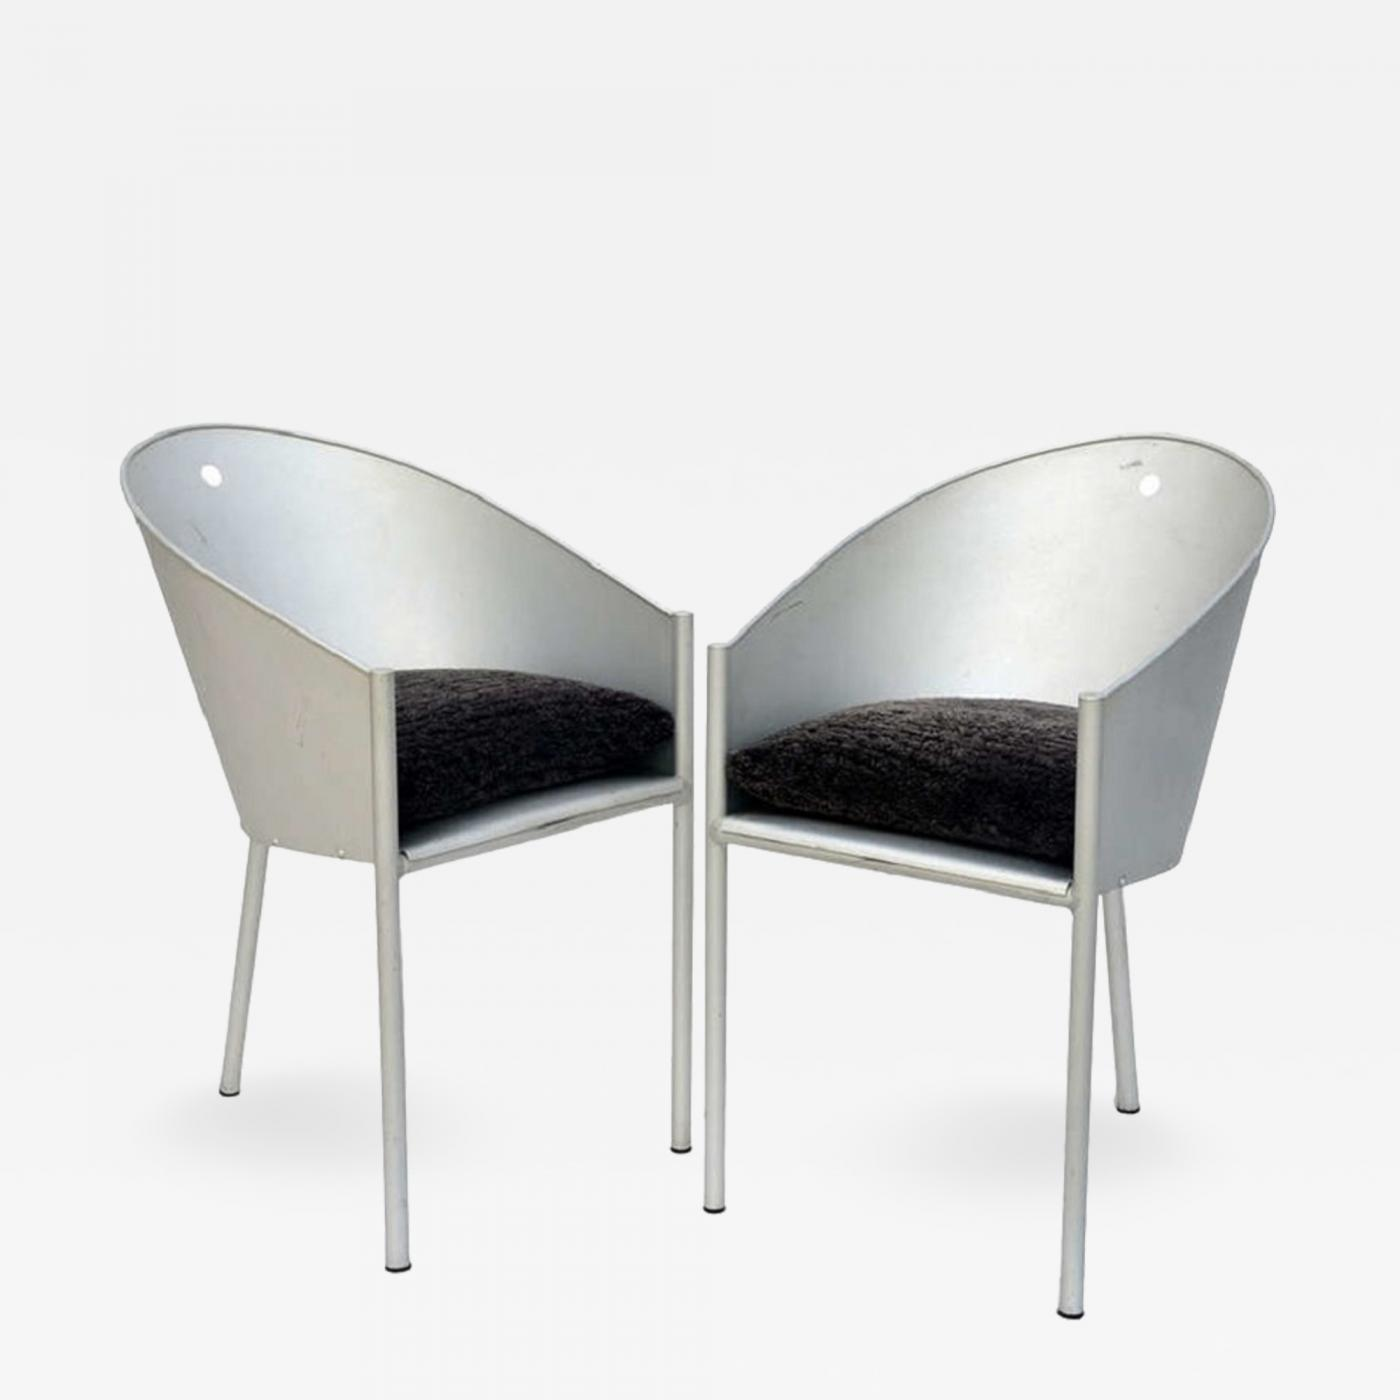 Philip Starck Philippe Starck Pair Of Sculptural Chairs By Philippe Starck